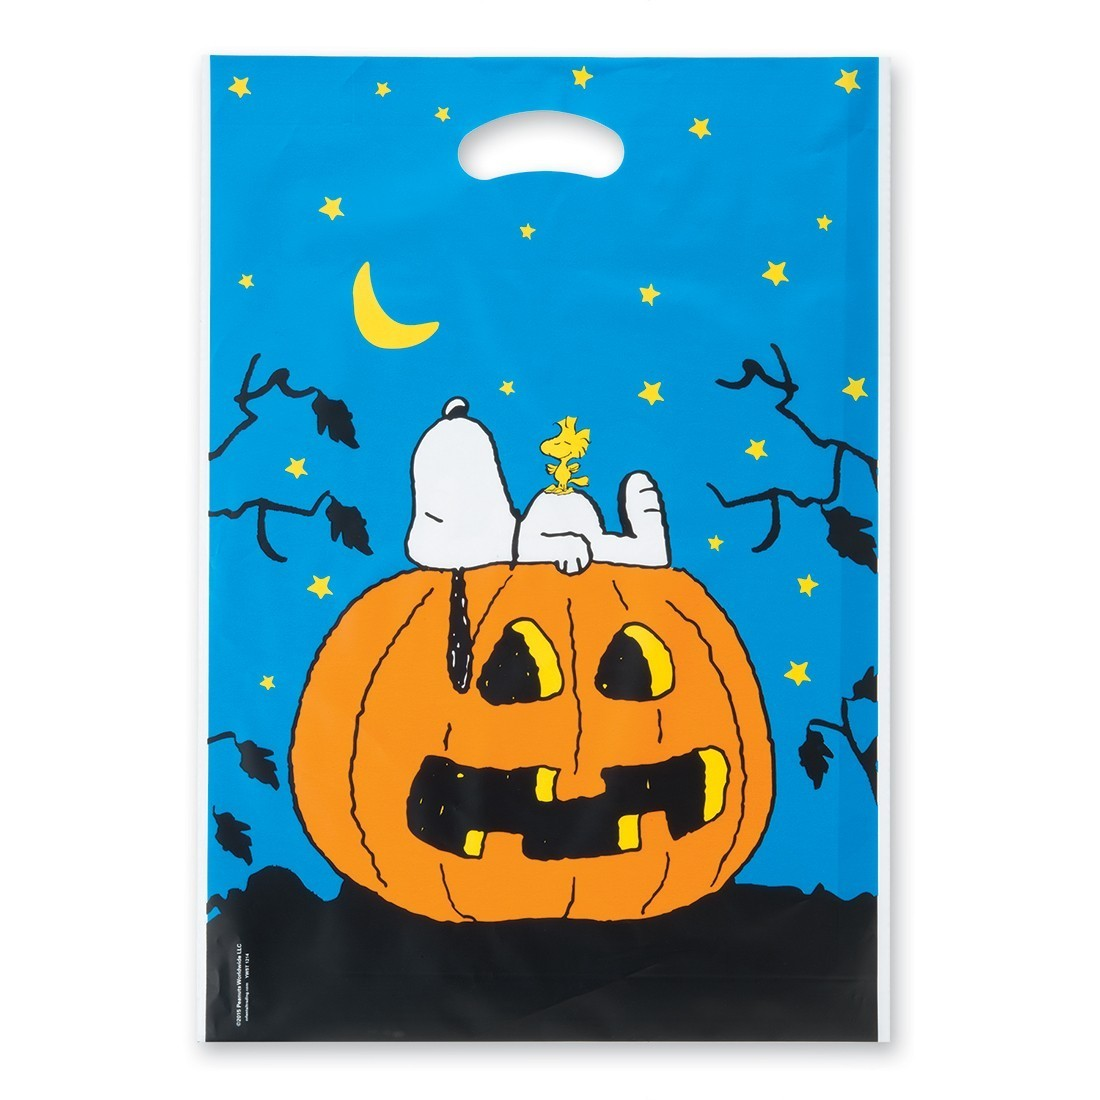 Peanuts® Halloween Take Home Bags [image]